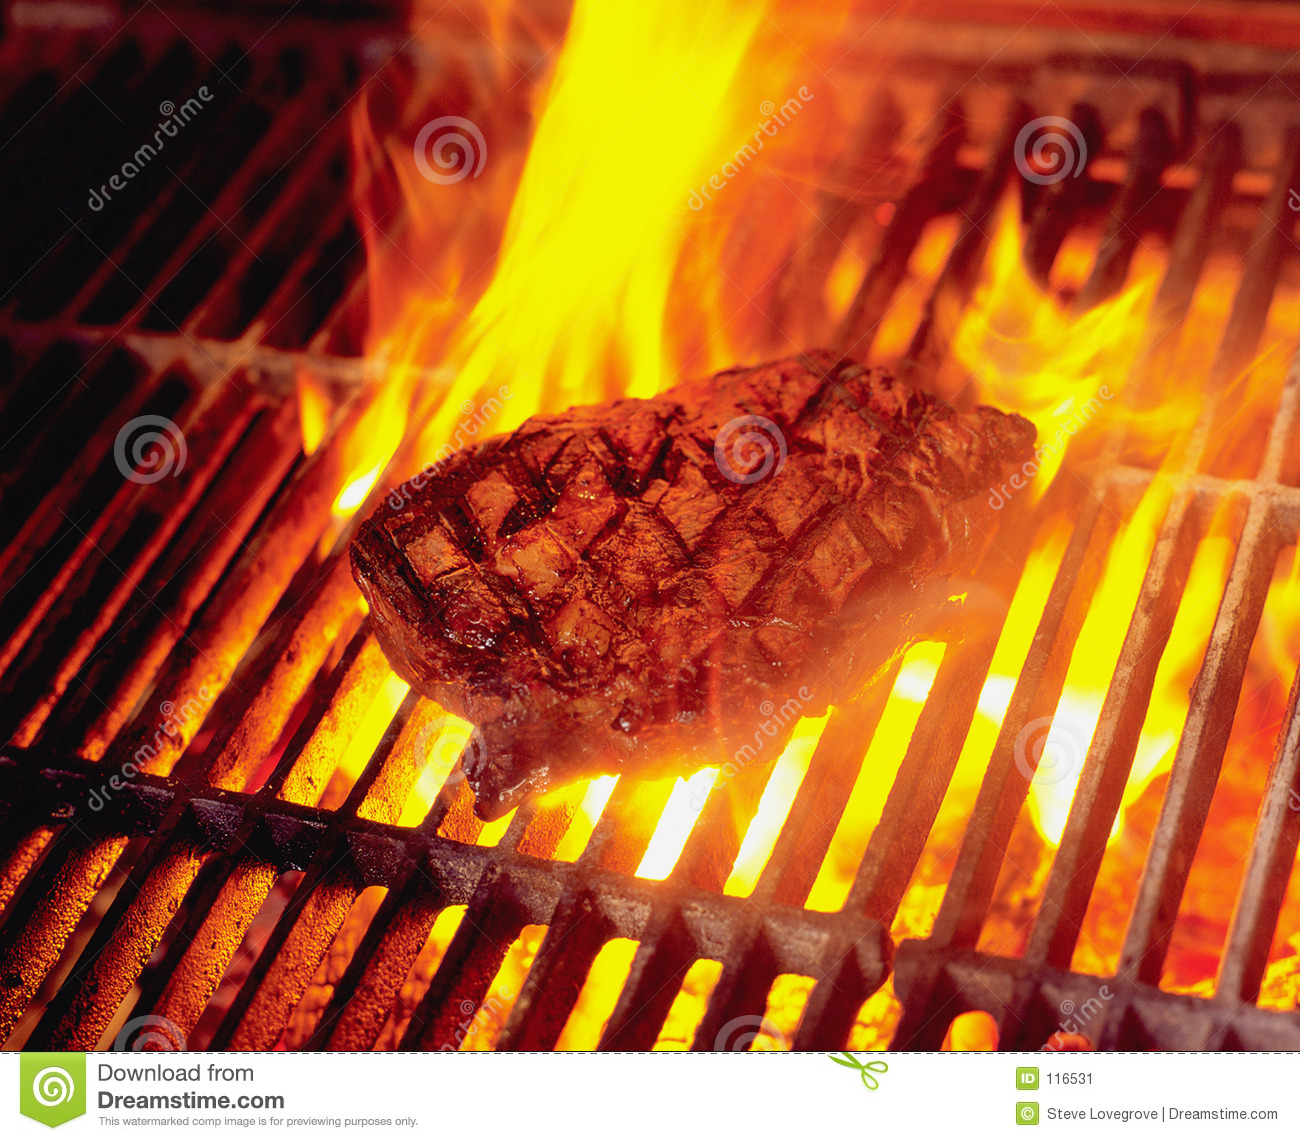 Steak cooking on wood fired flame grill in Restaurant.